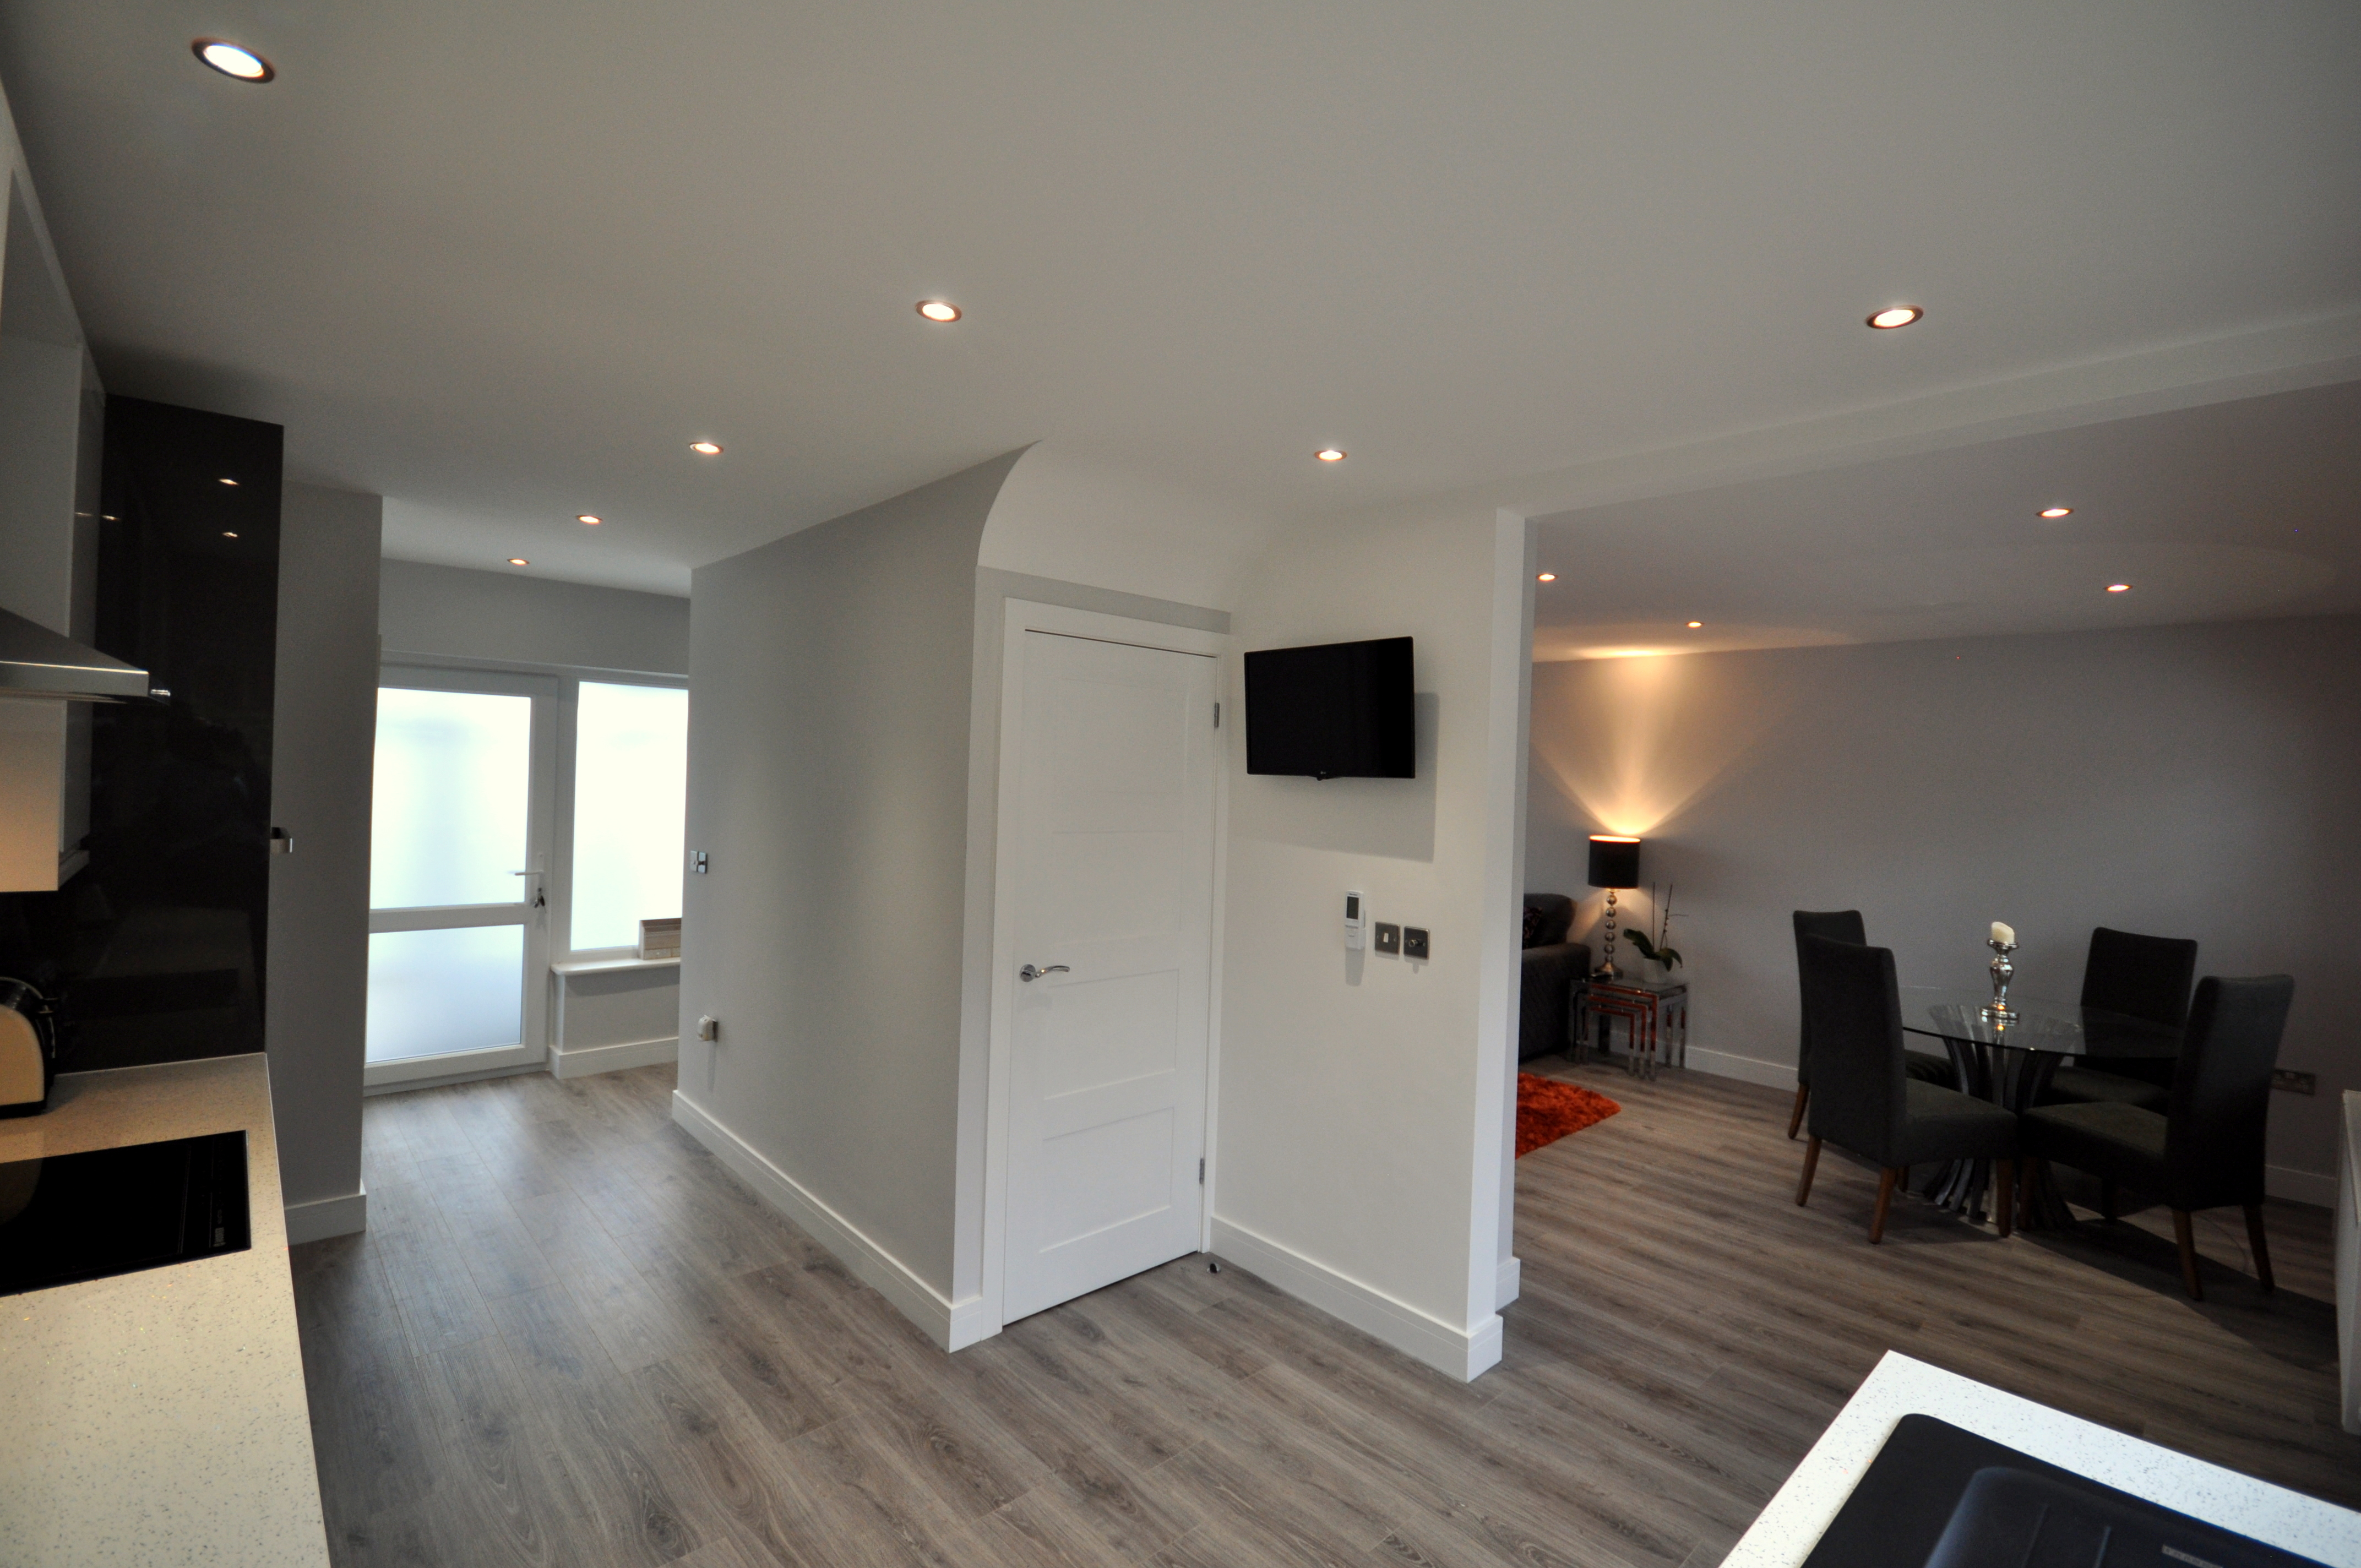 Plastering Walls & Ceiling of Open Plan Living Room in Bournemouth